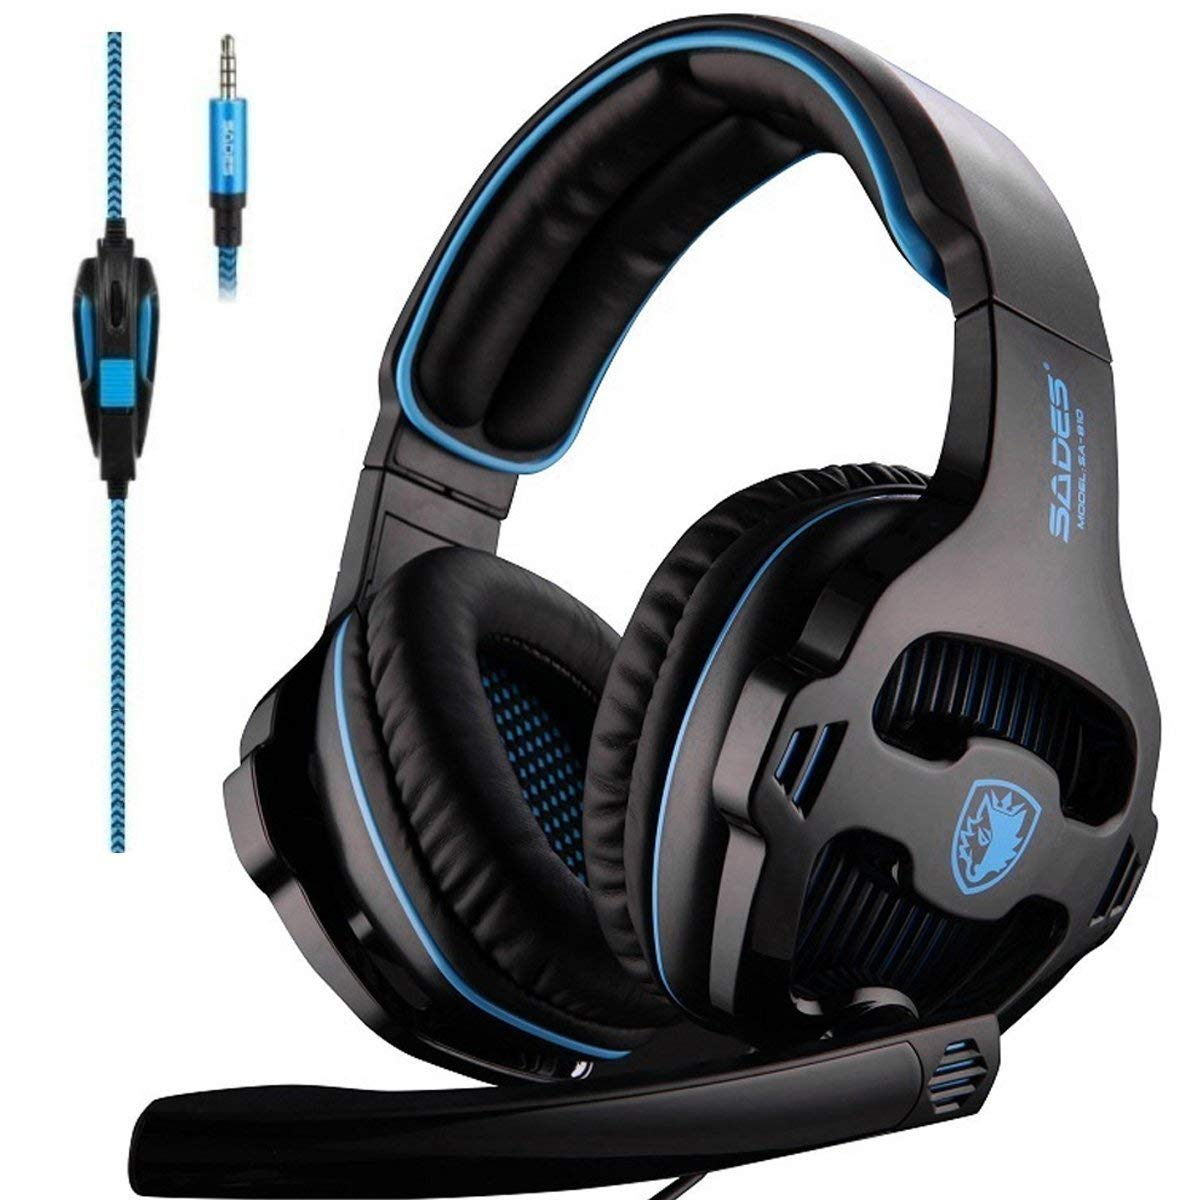 Sades SA-810 Multi-platform Compatible Over-Ear Stereo Bass Gaming Headphone with Noise Isolation Microphone – Black